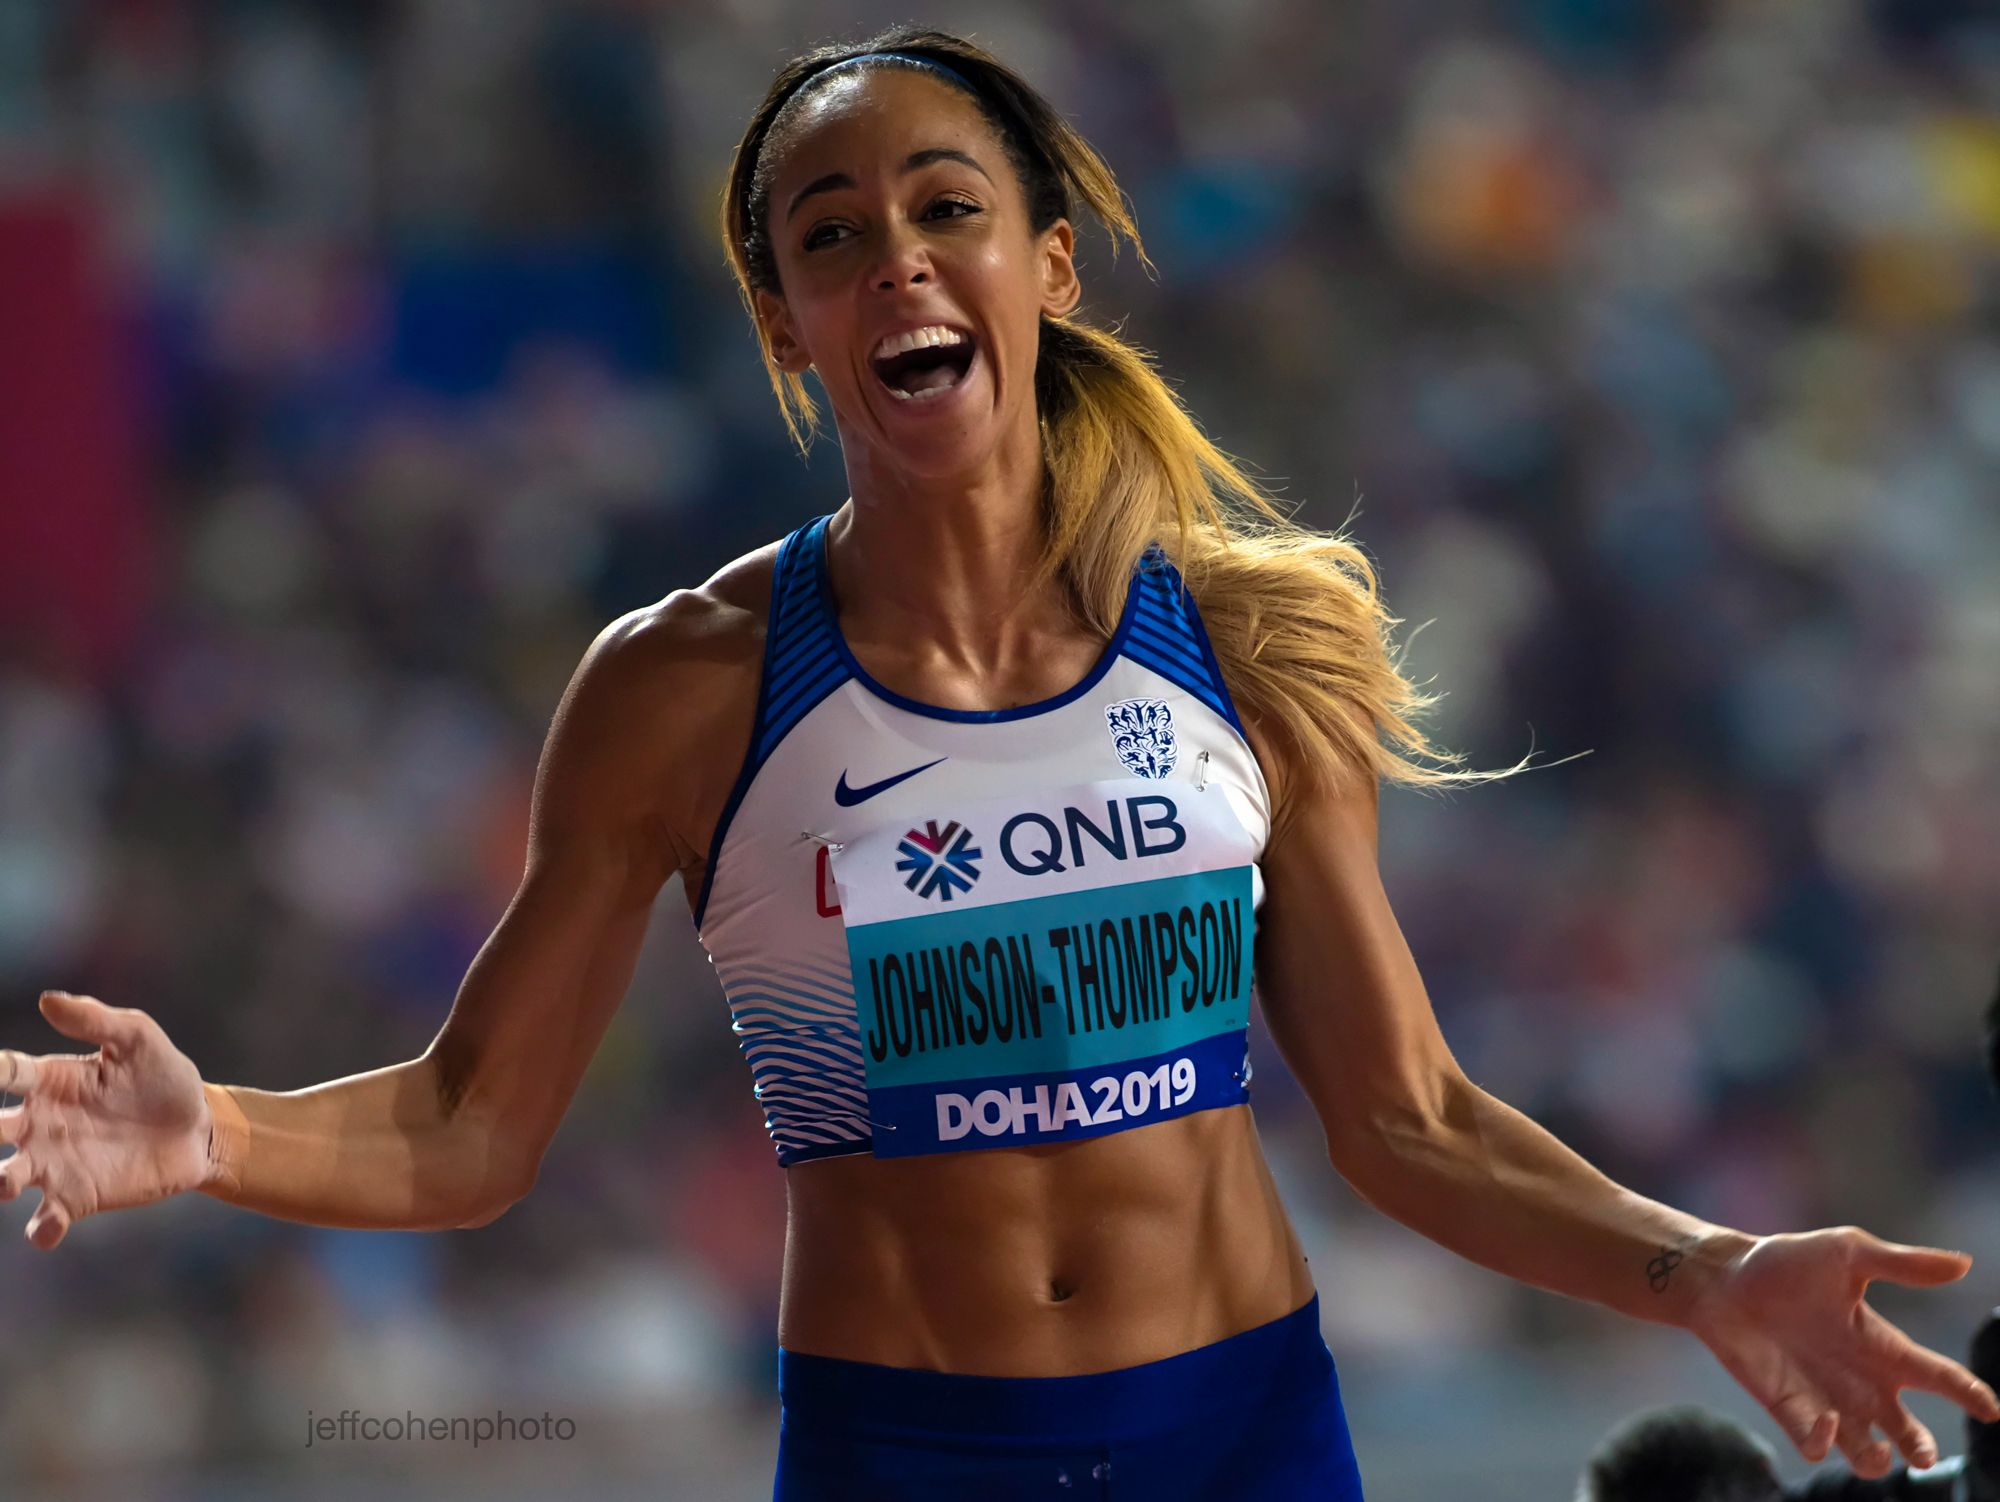 Katarina Johnson thompson, heptathlon. 2019 iaaf world athletics championships doha,qatar